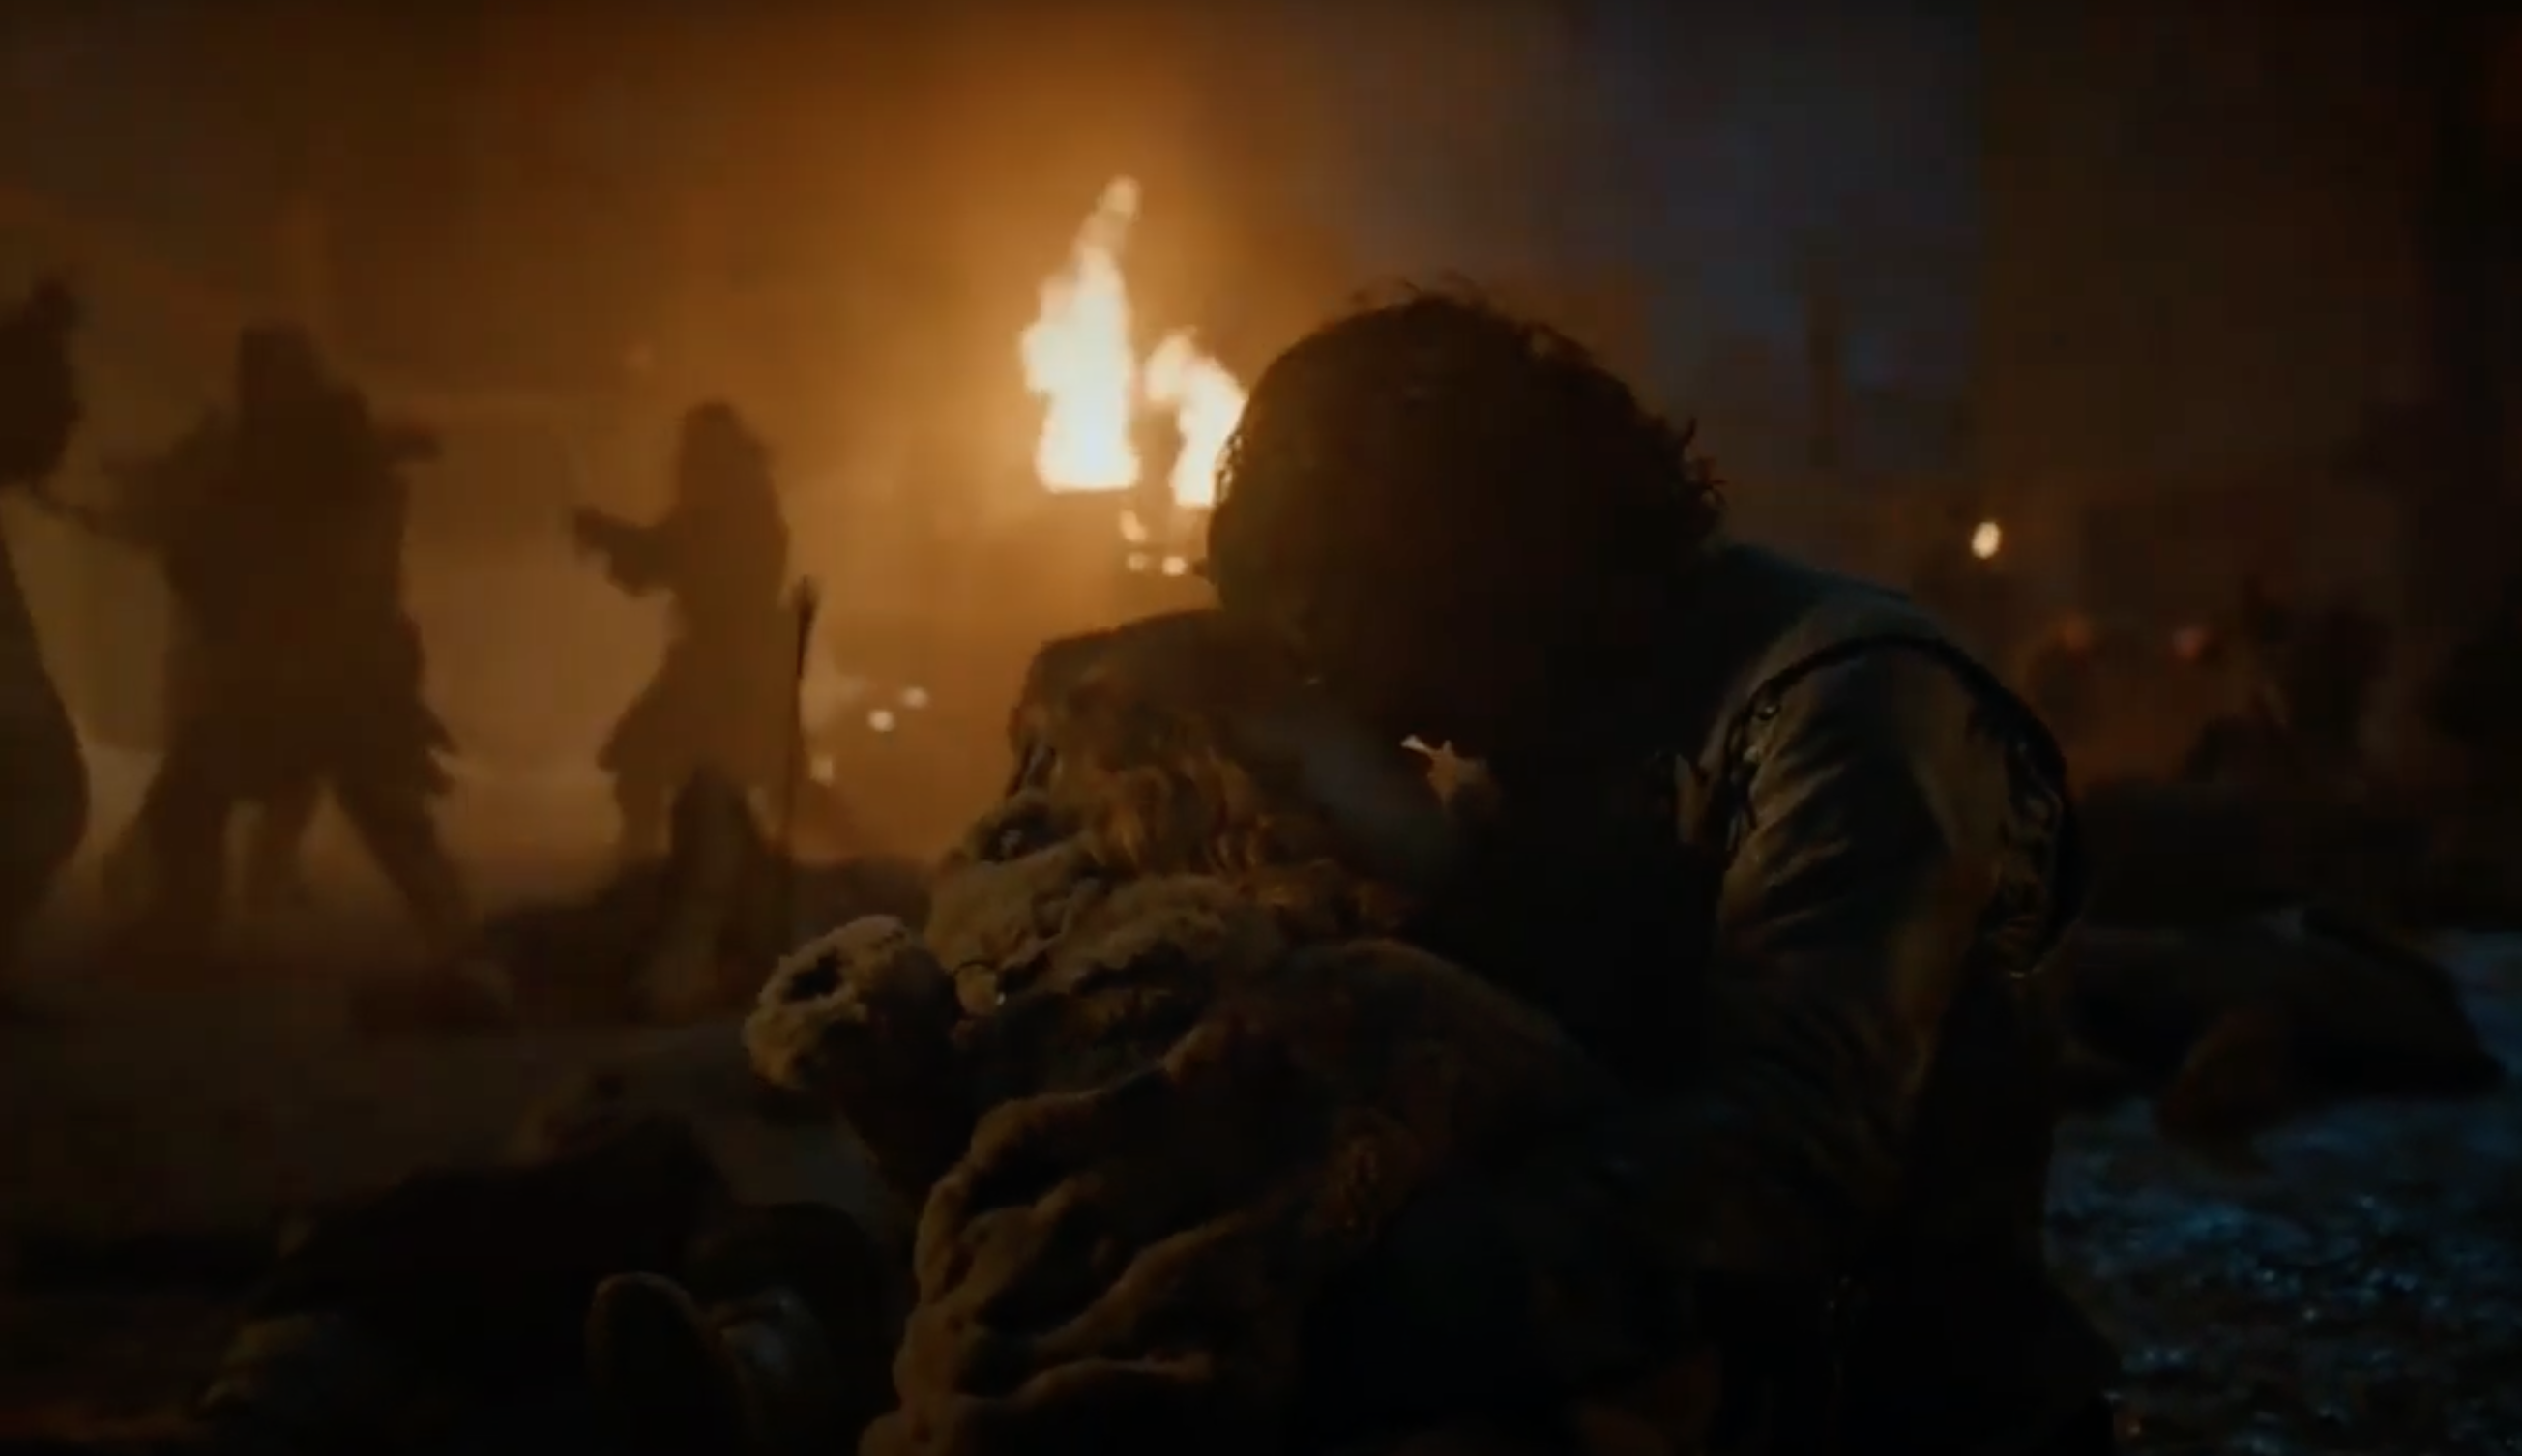 Still from Game of Thrones: Jon Snow cradles Ygritte's dead body in his arm as battle wages around him